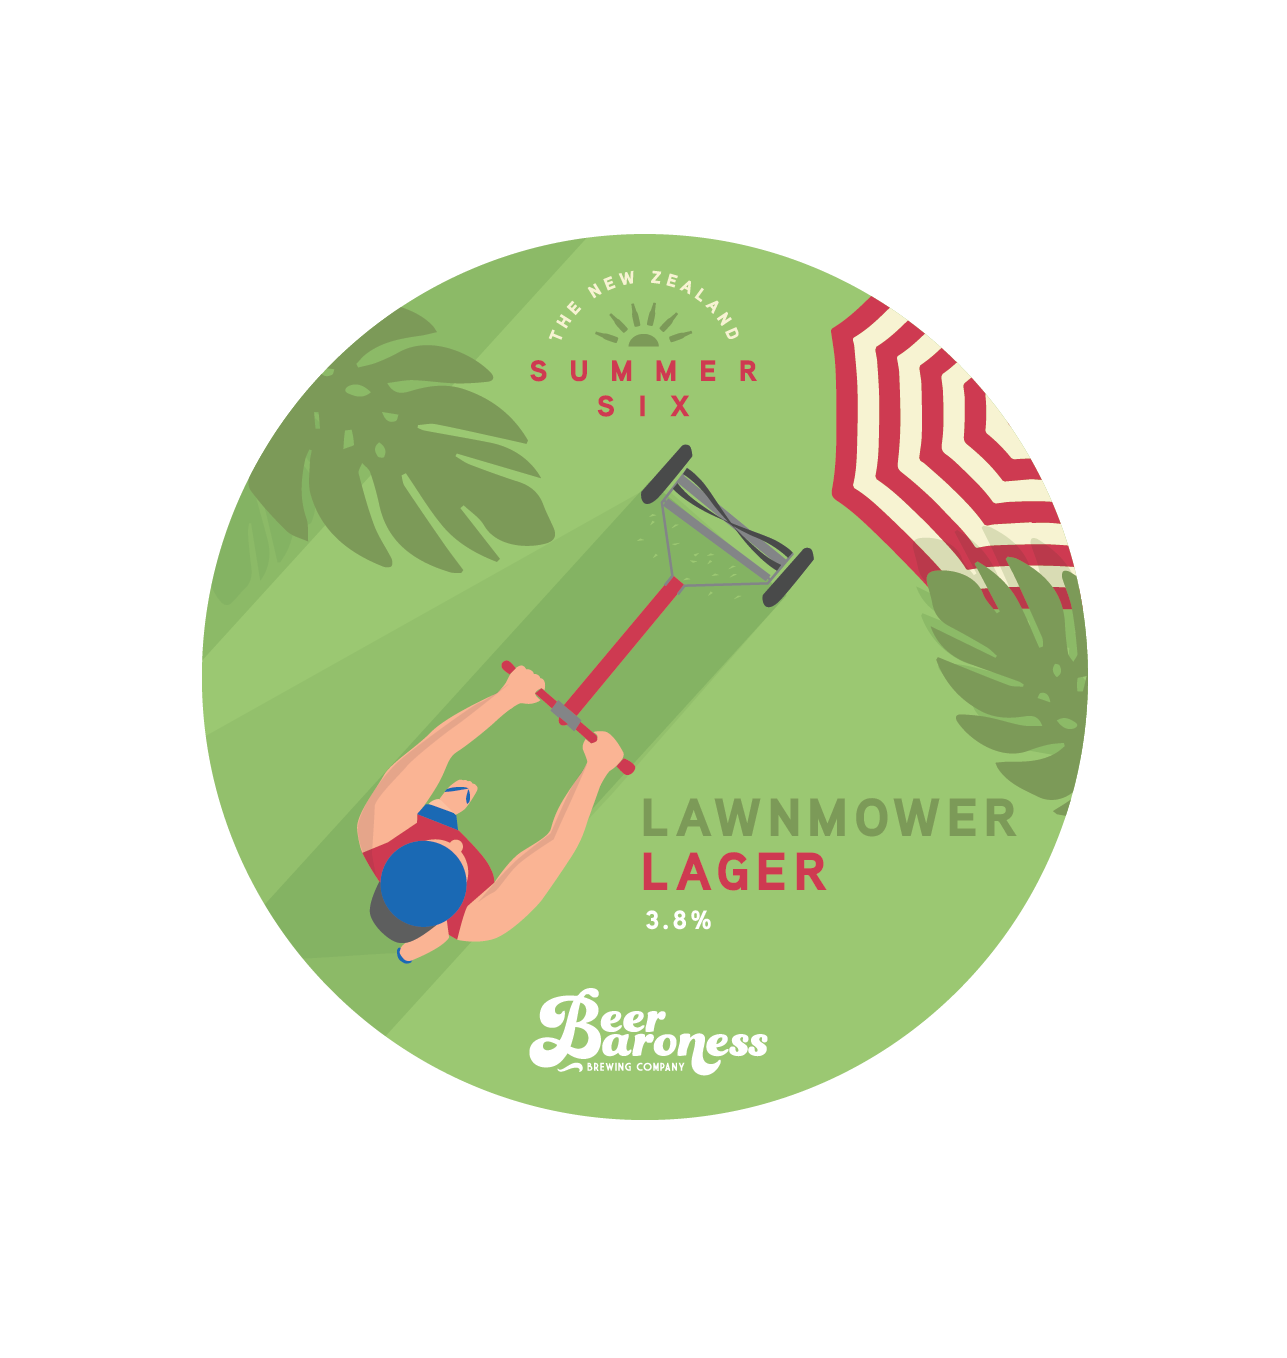 Beer Baroness Summer Six - Lawnmower Lager - Tap Badge.png